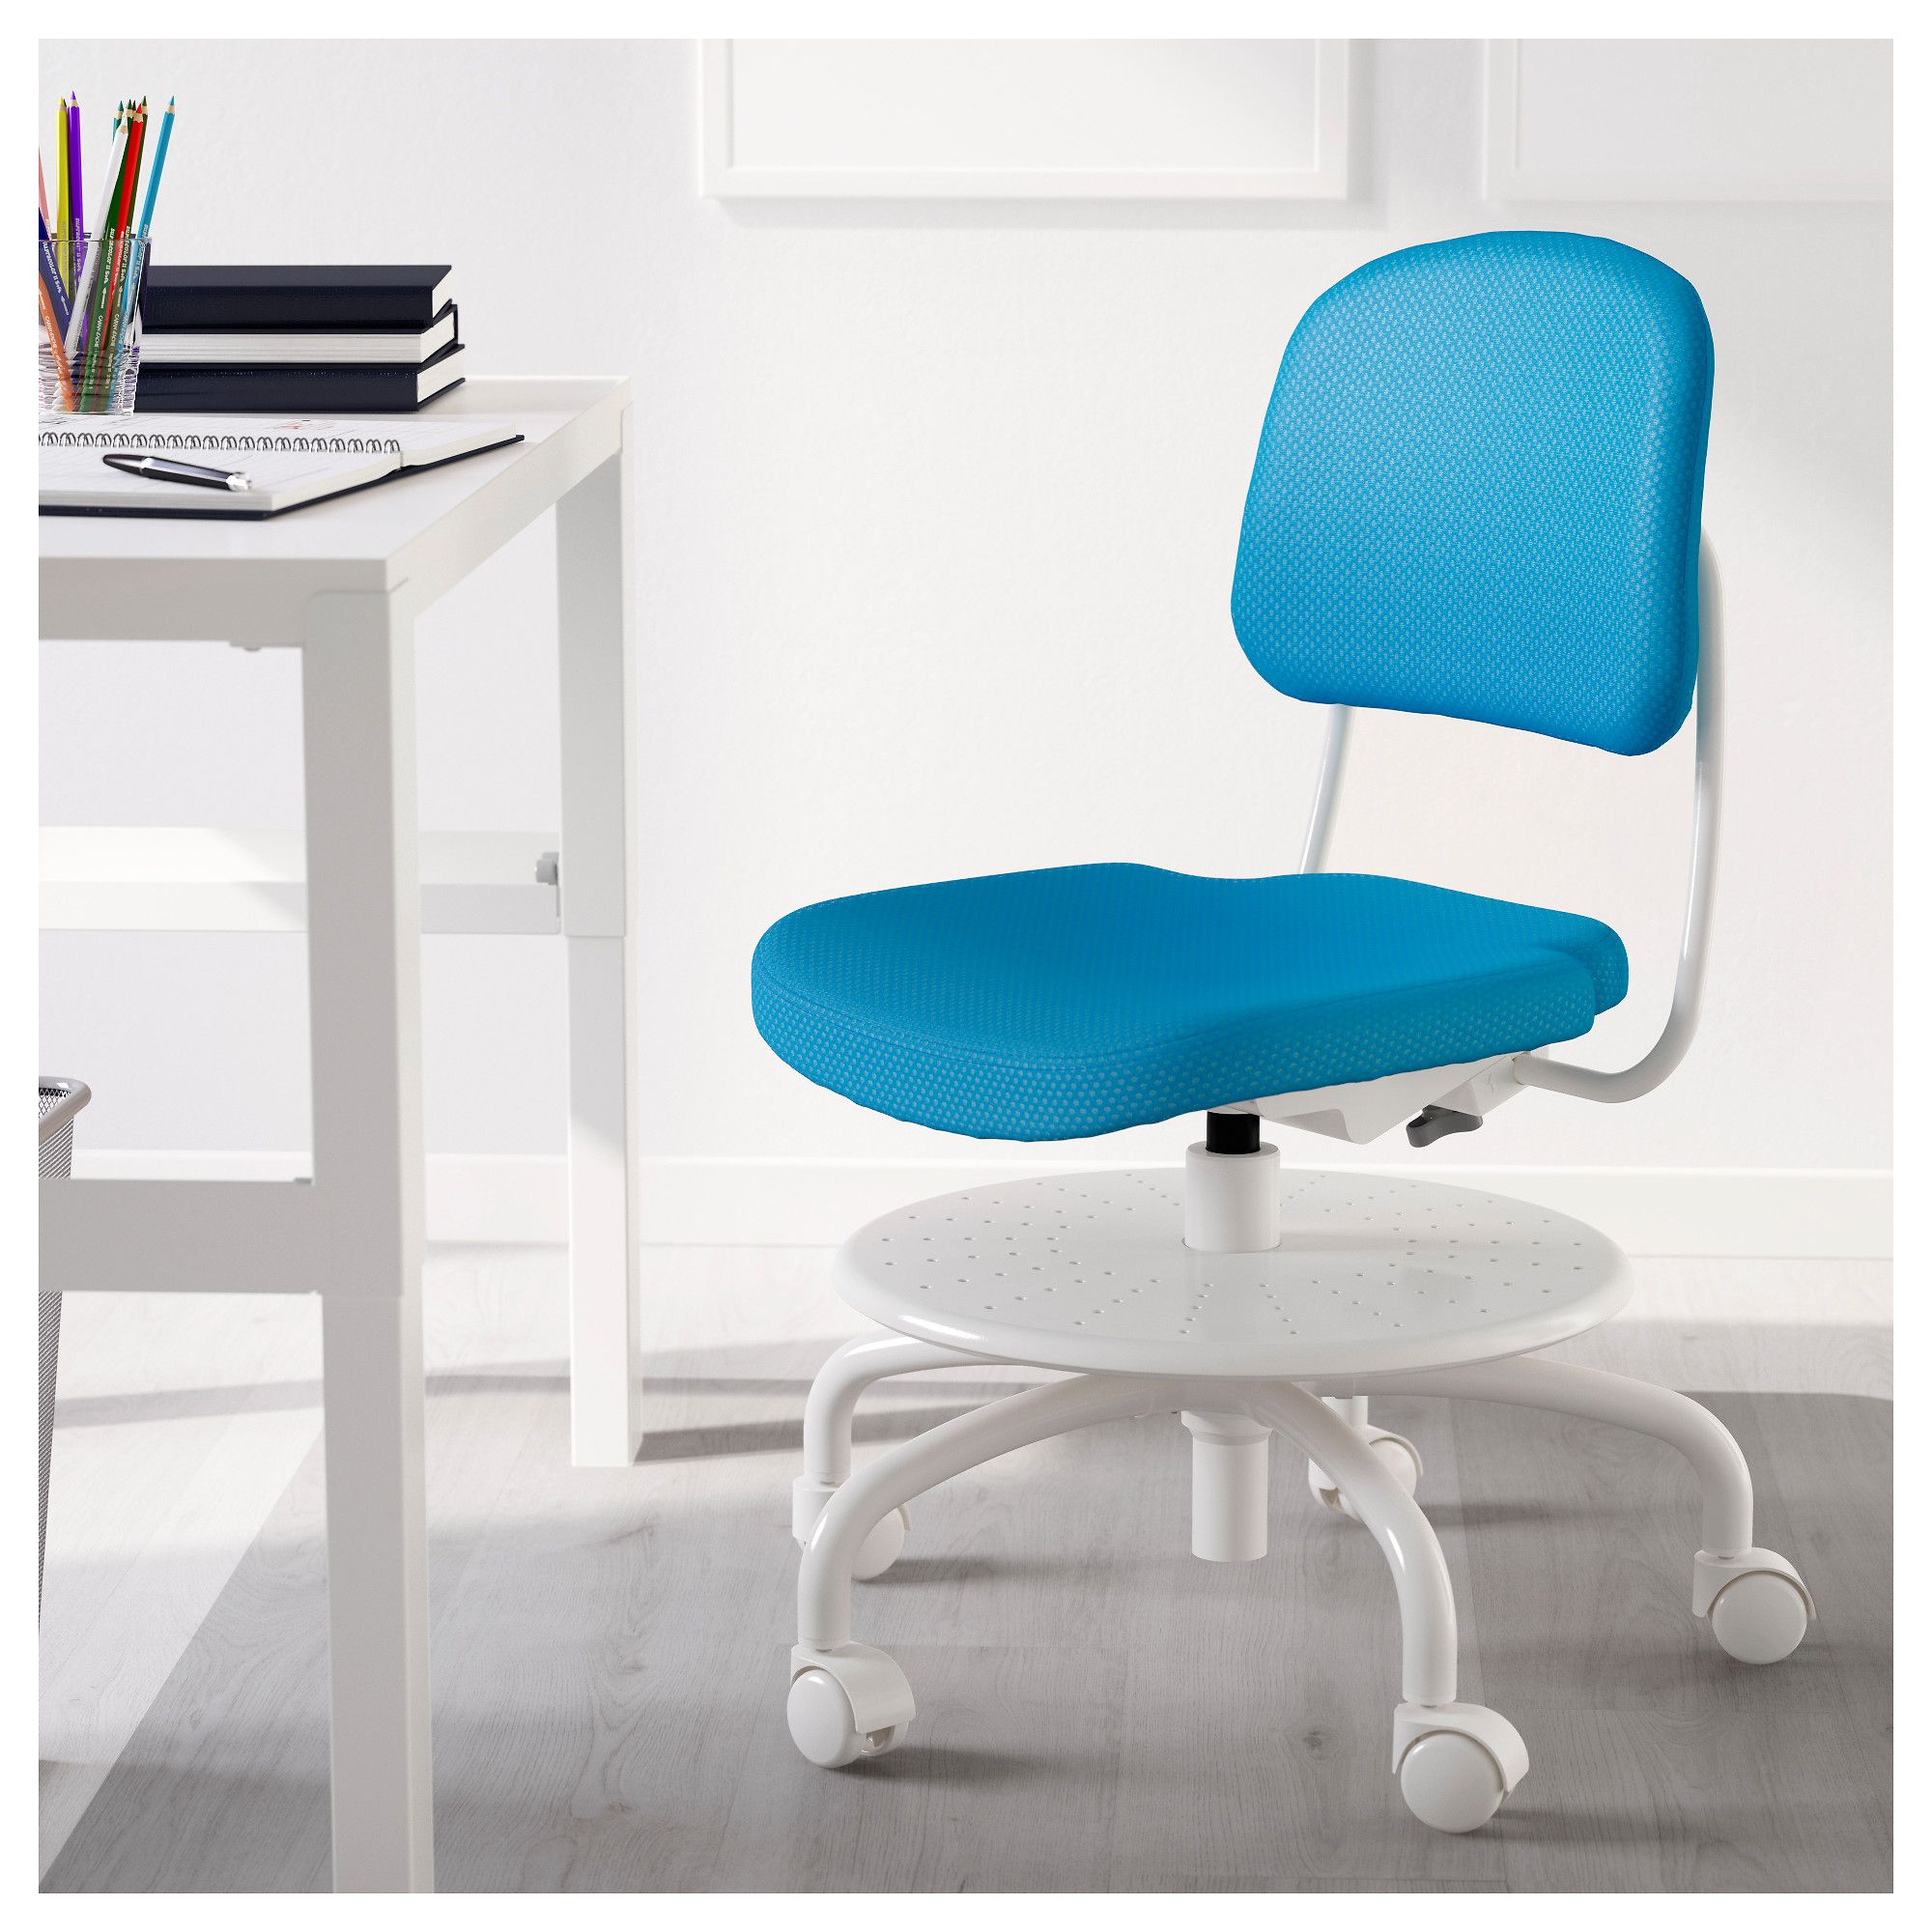 Furniture And Home Furnishings Desk Chair Chair